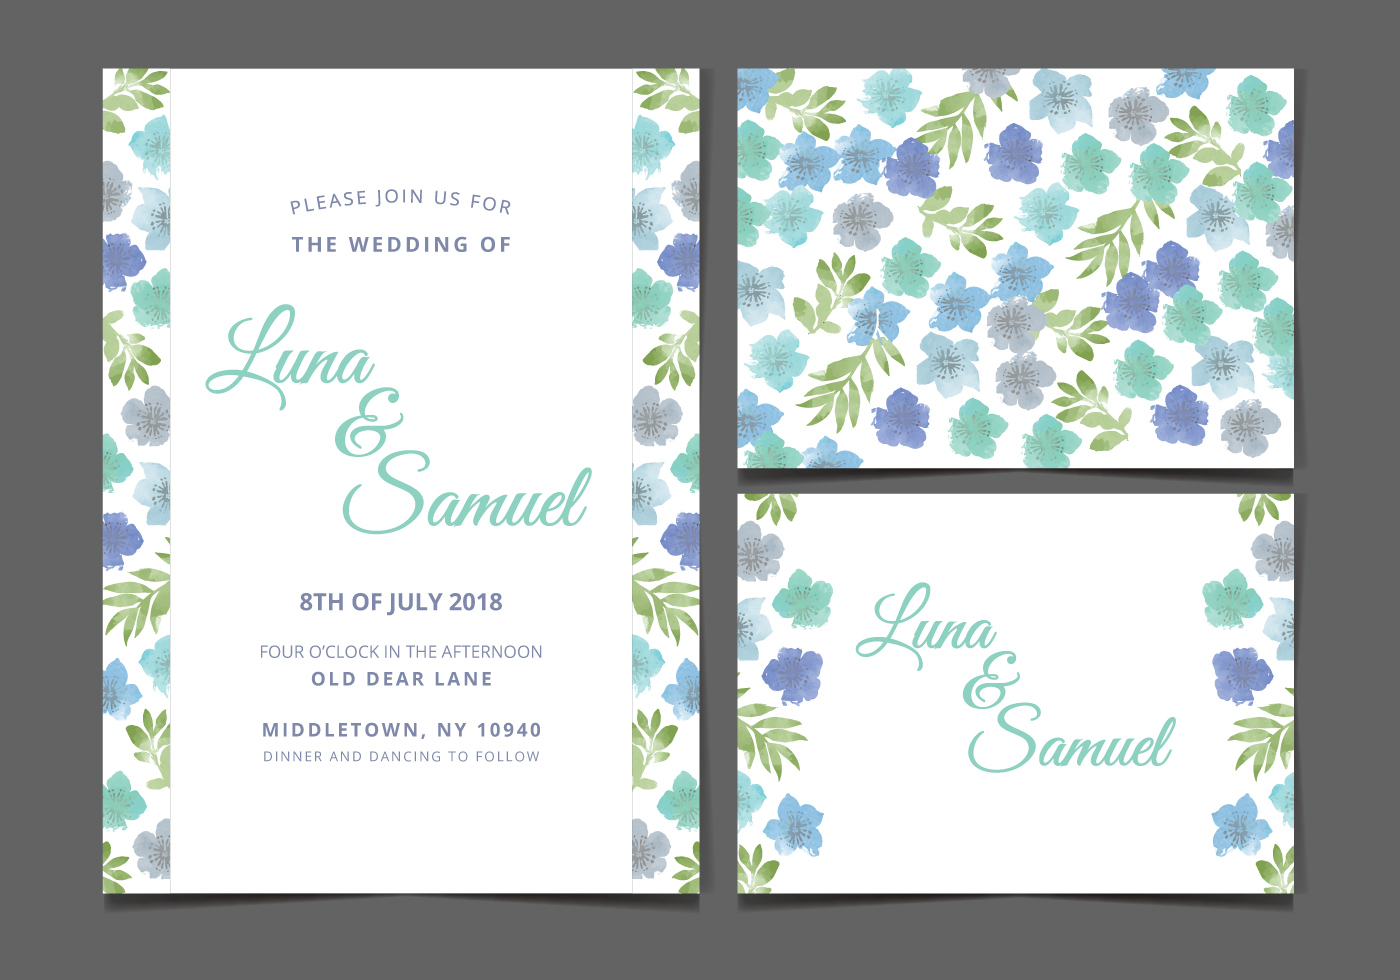 Blue Wedding Invitation Free Vector Art - (14299 Free Downloads)